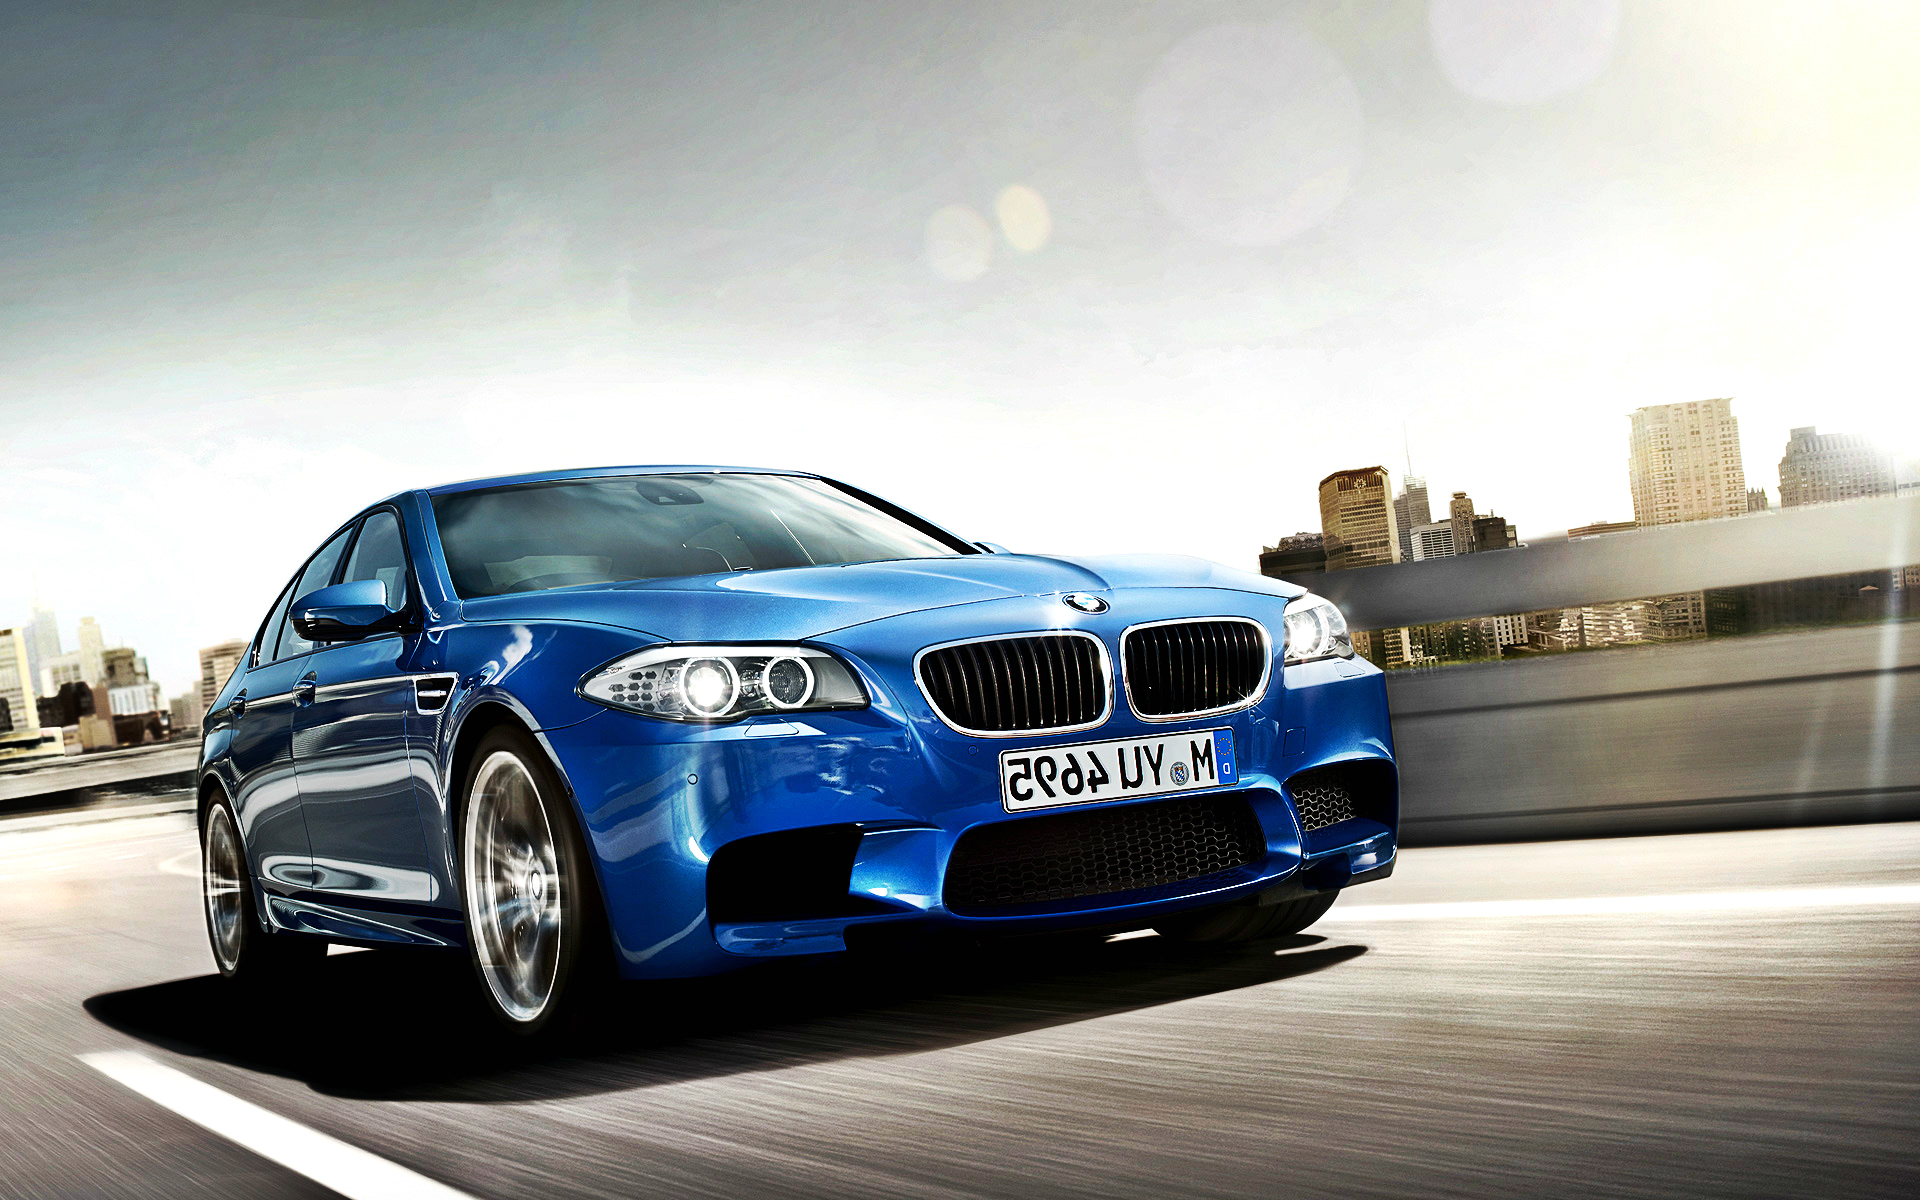 BMW M5 wallpapers Hd Wallpapers 1920x1200